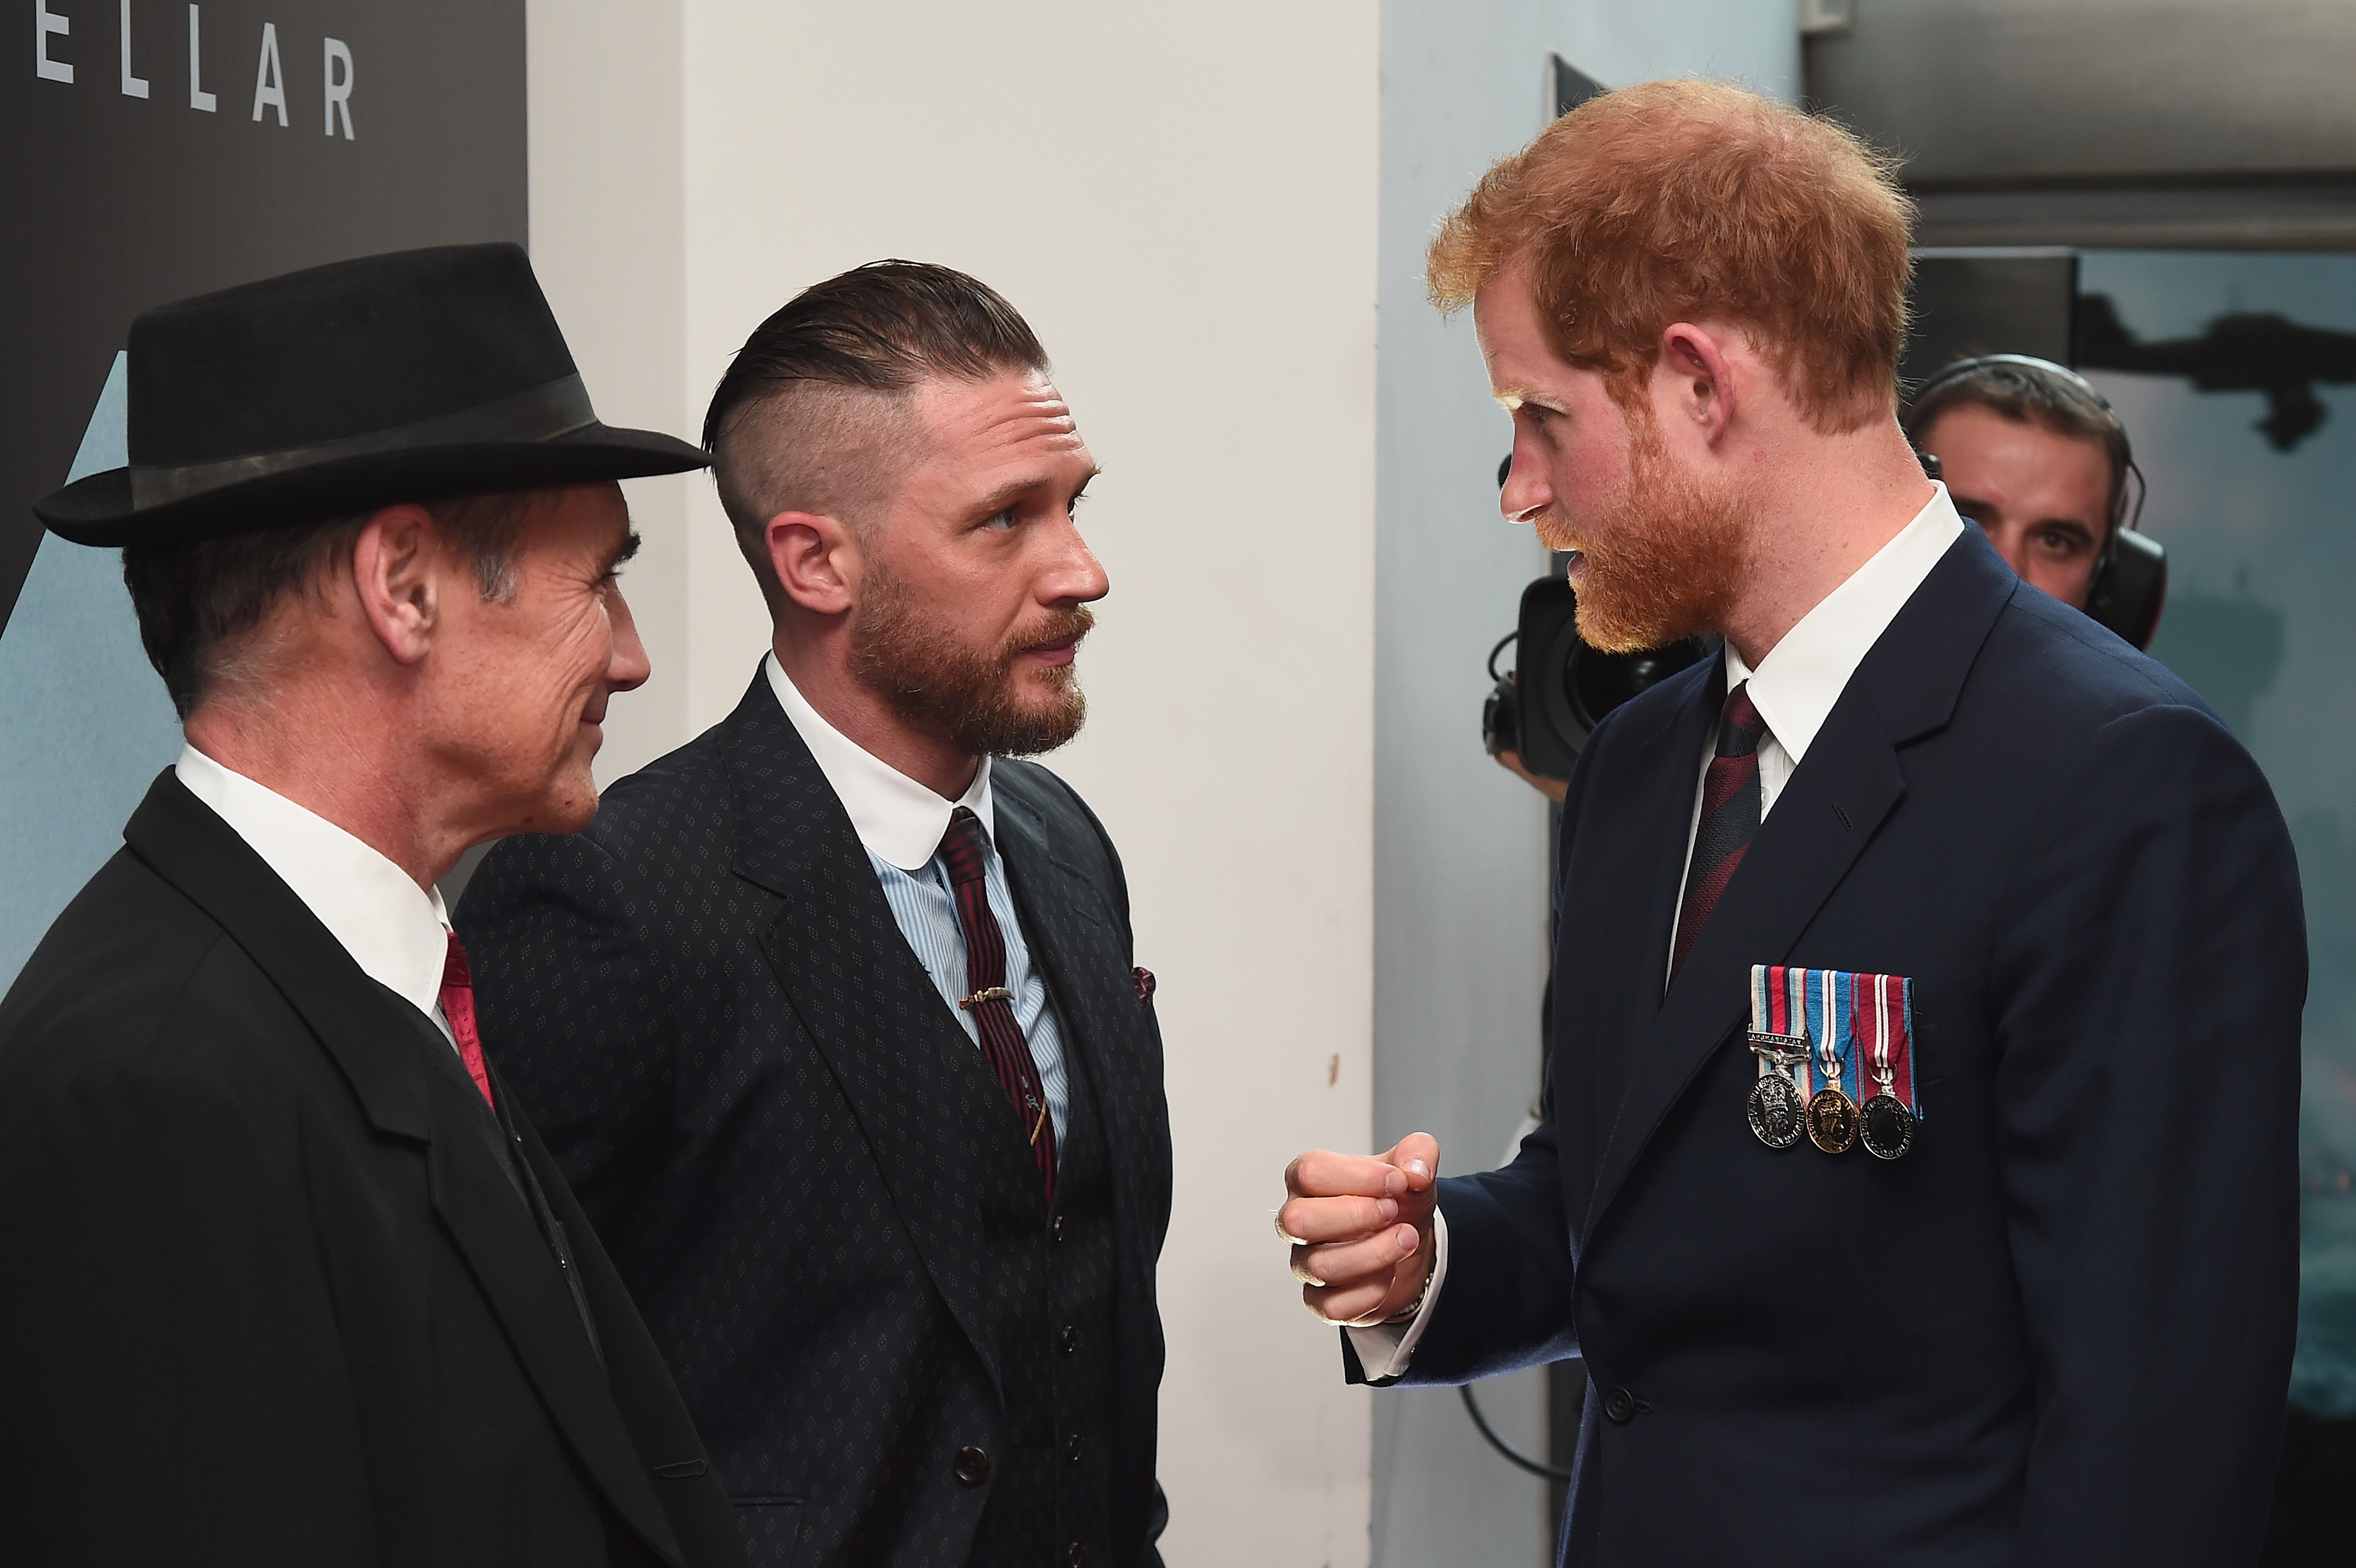 Prince Harry meets Sir Mark Rylance and Tom Hardy as he attends the Dunkirk premiere in London.